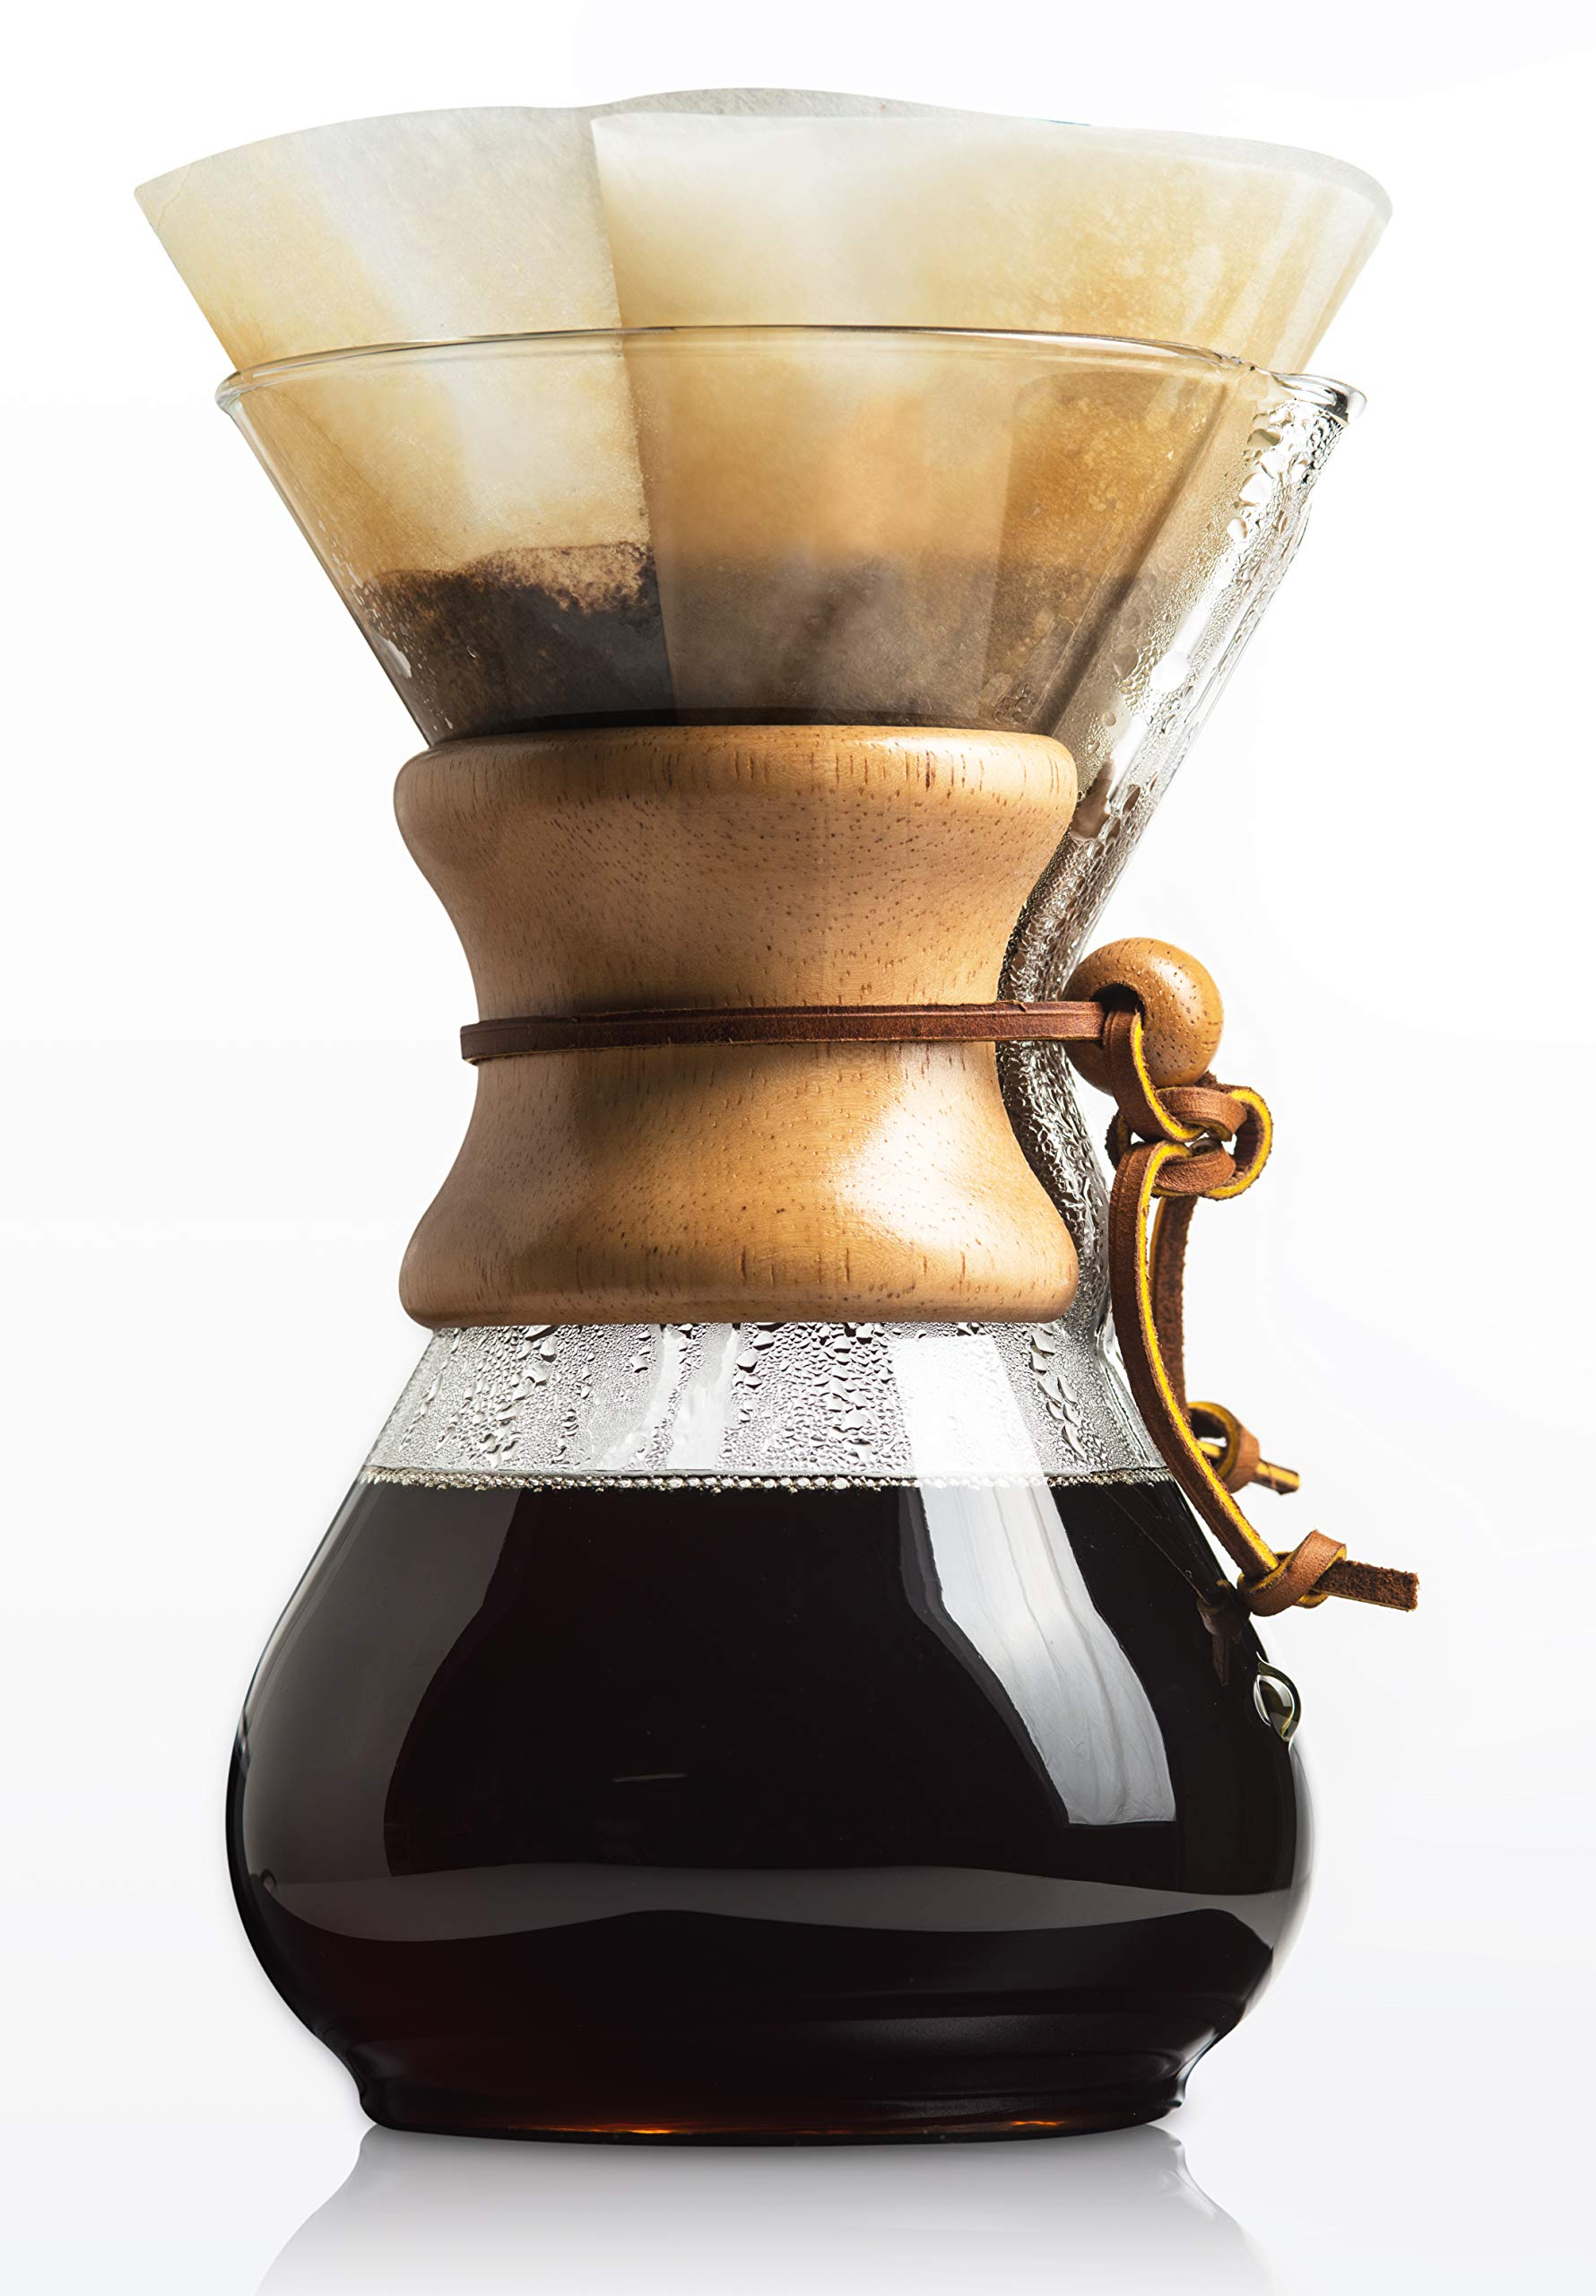 CHEMEX Pour-Over Glass Coffee Maker